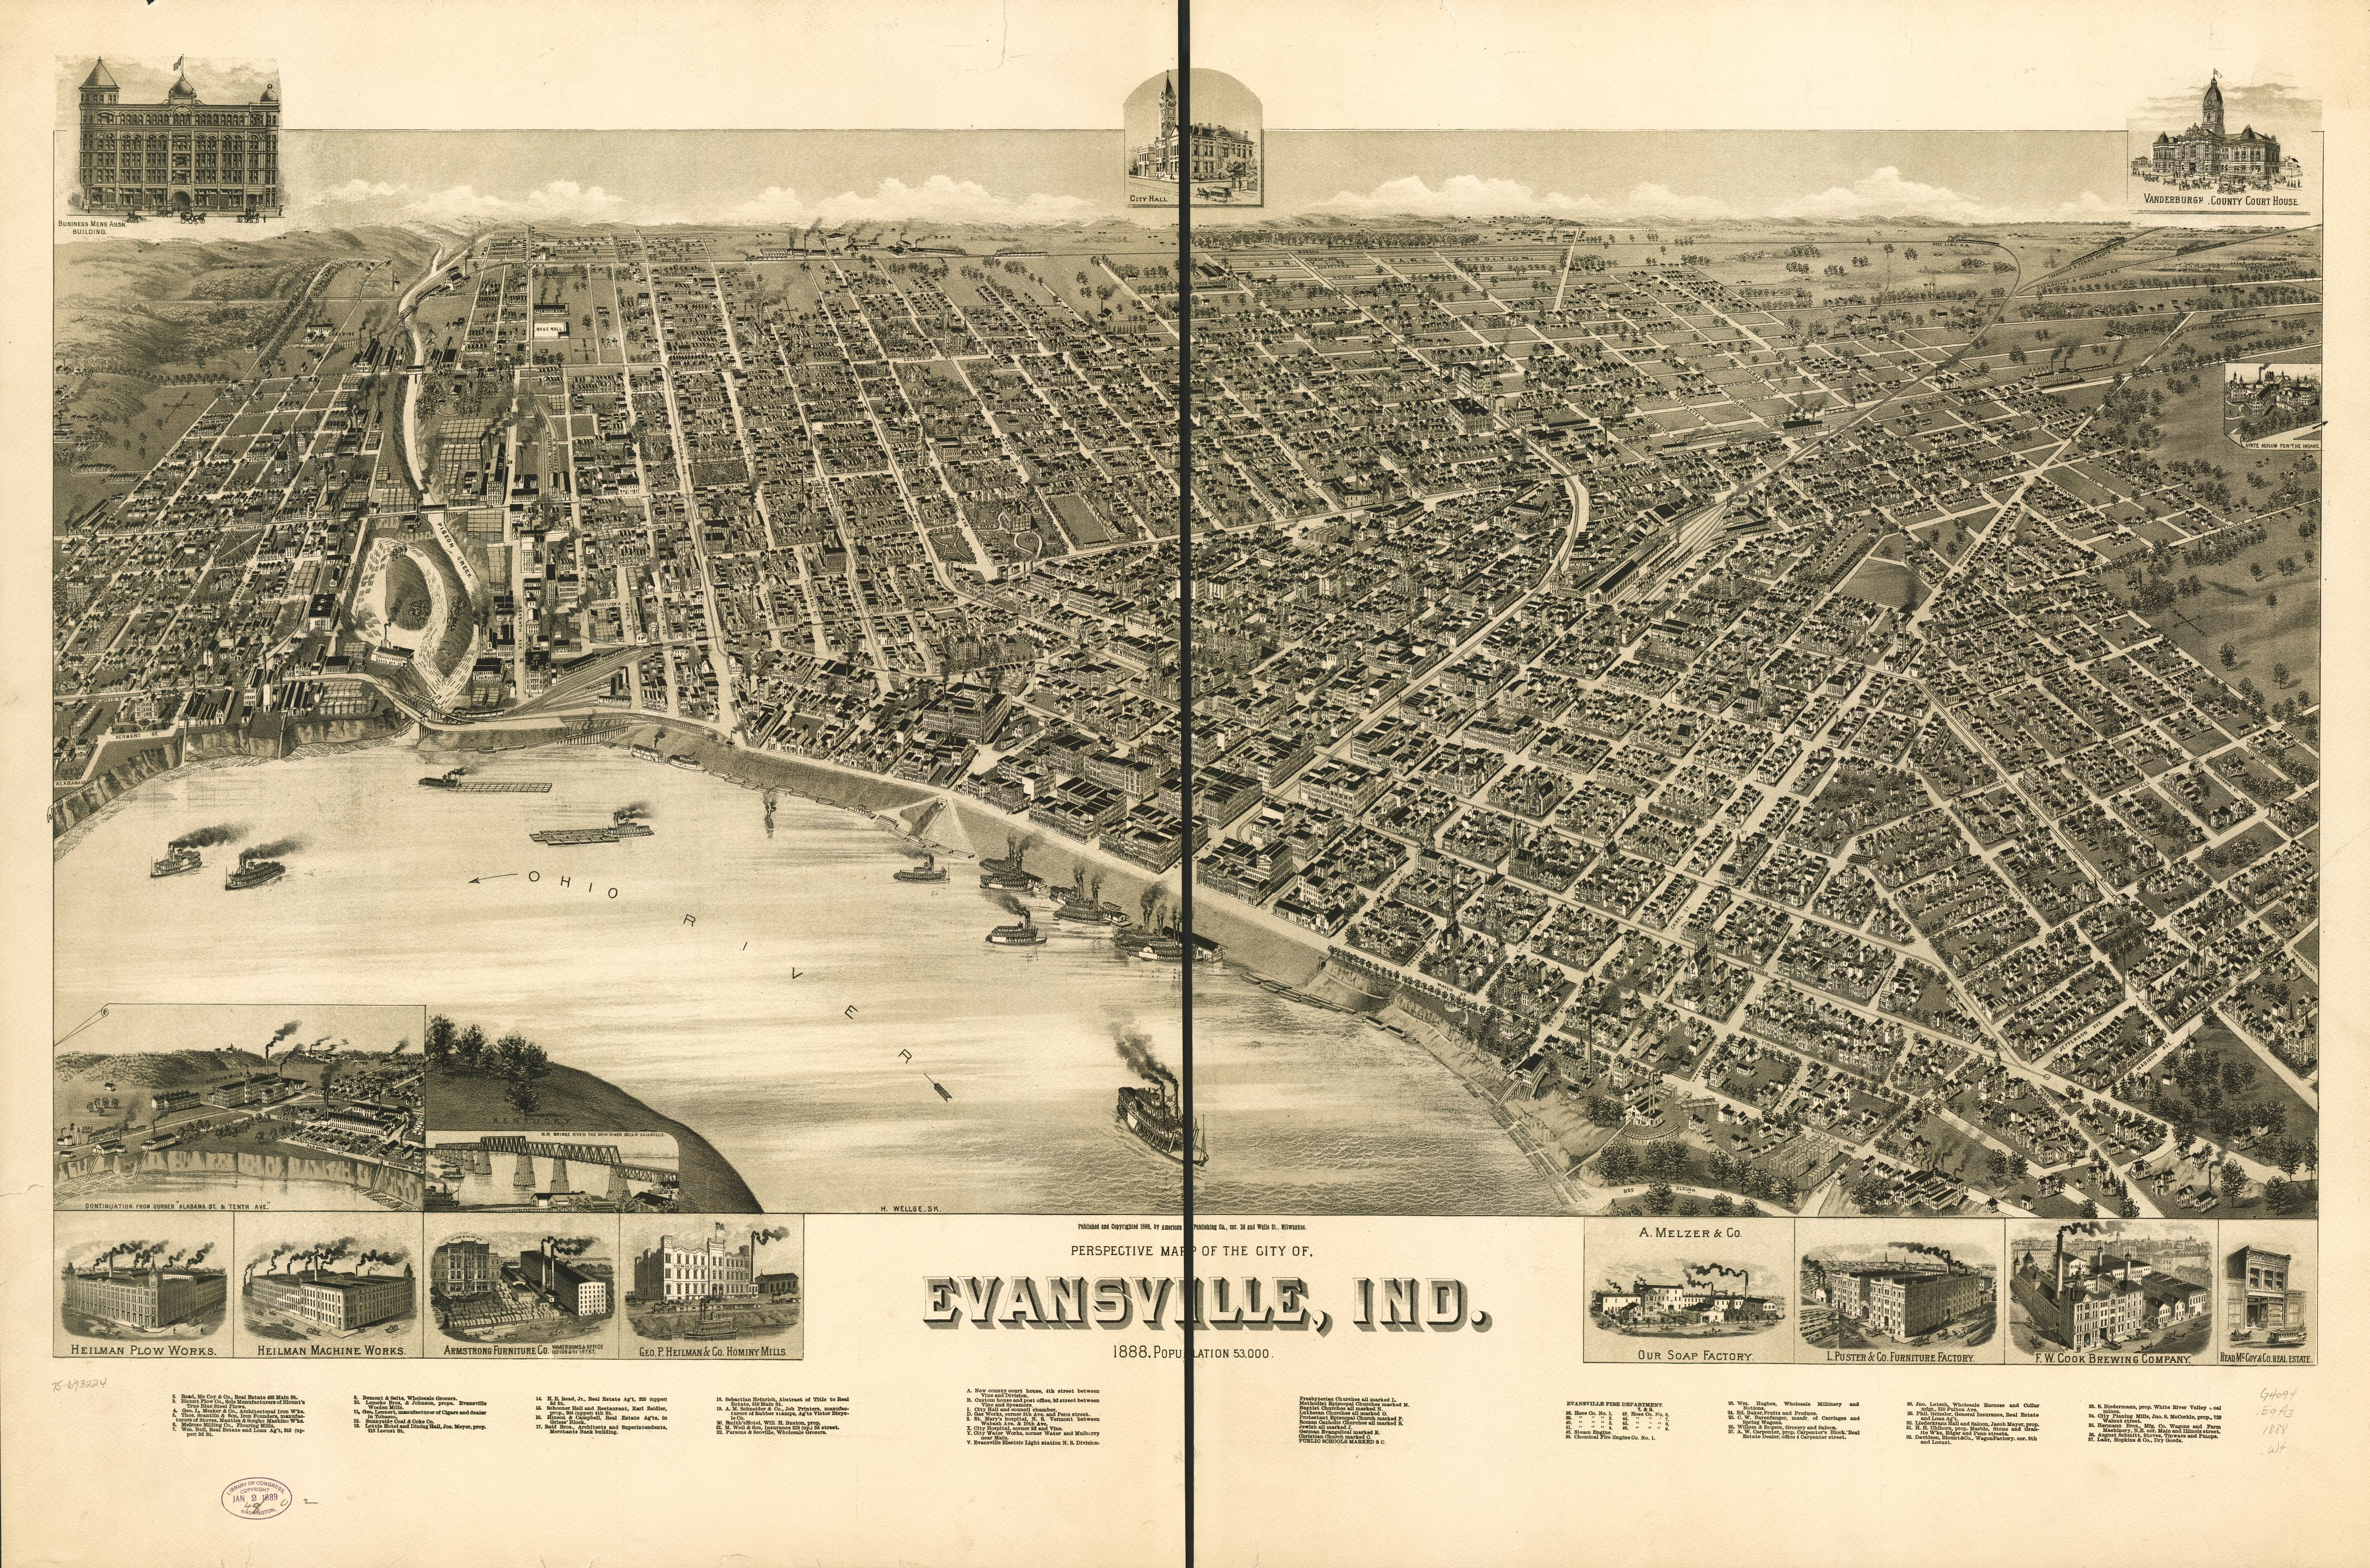 1888 Map Of Evansville Indiana Founded On The North Side Of A Loop In The Ohio River With Images Evansville Evansville Indiana Birds Eye View Map